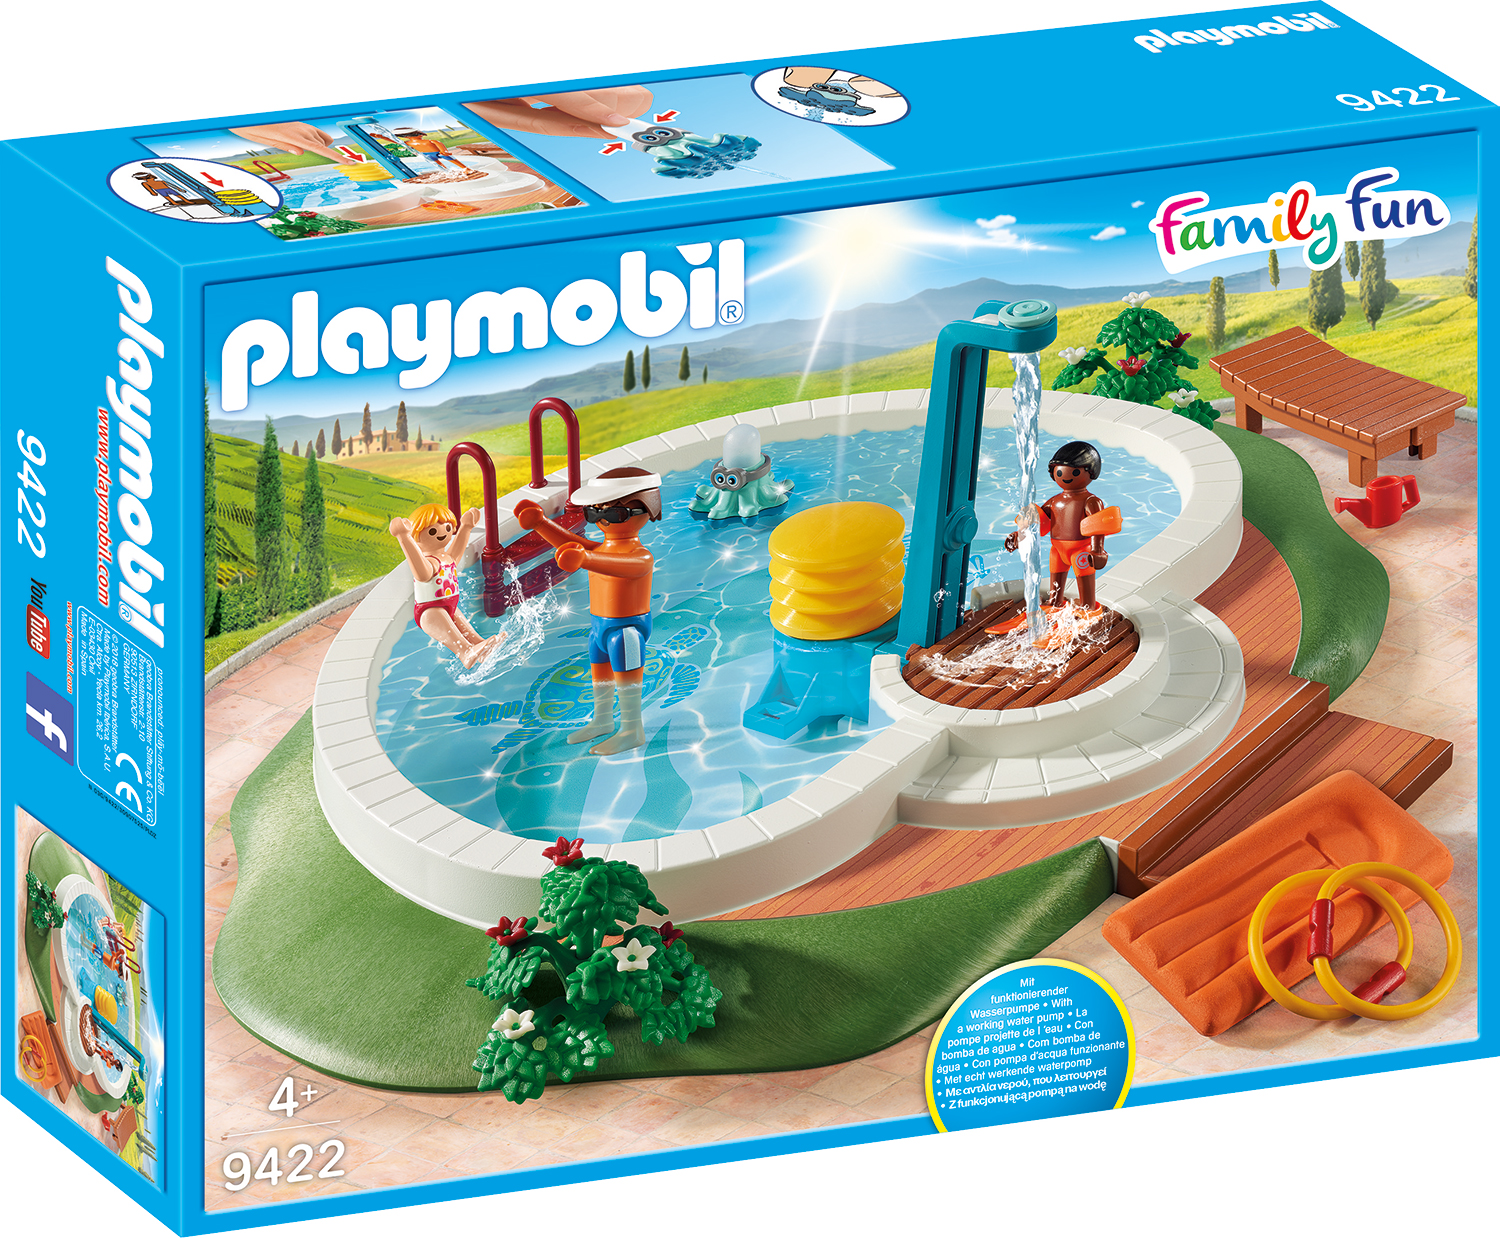 Piscina playmobil family fun